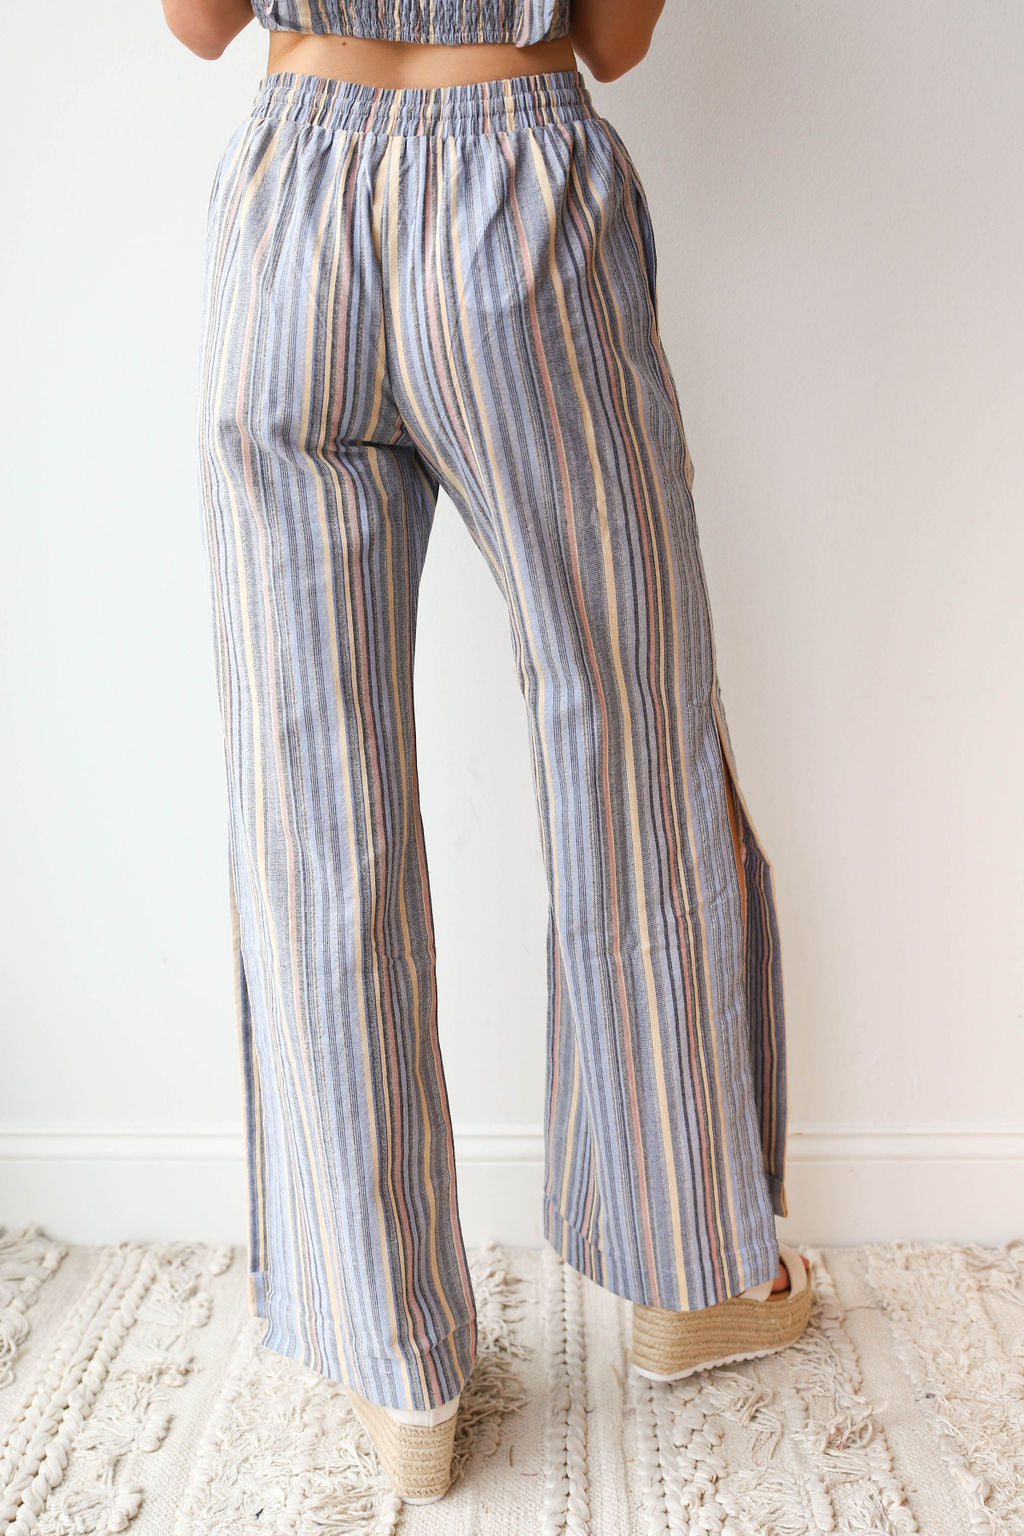 [shop name], head in the clouds pants